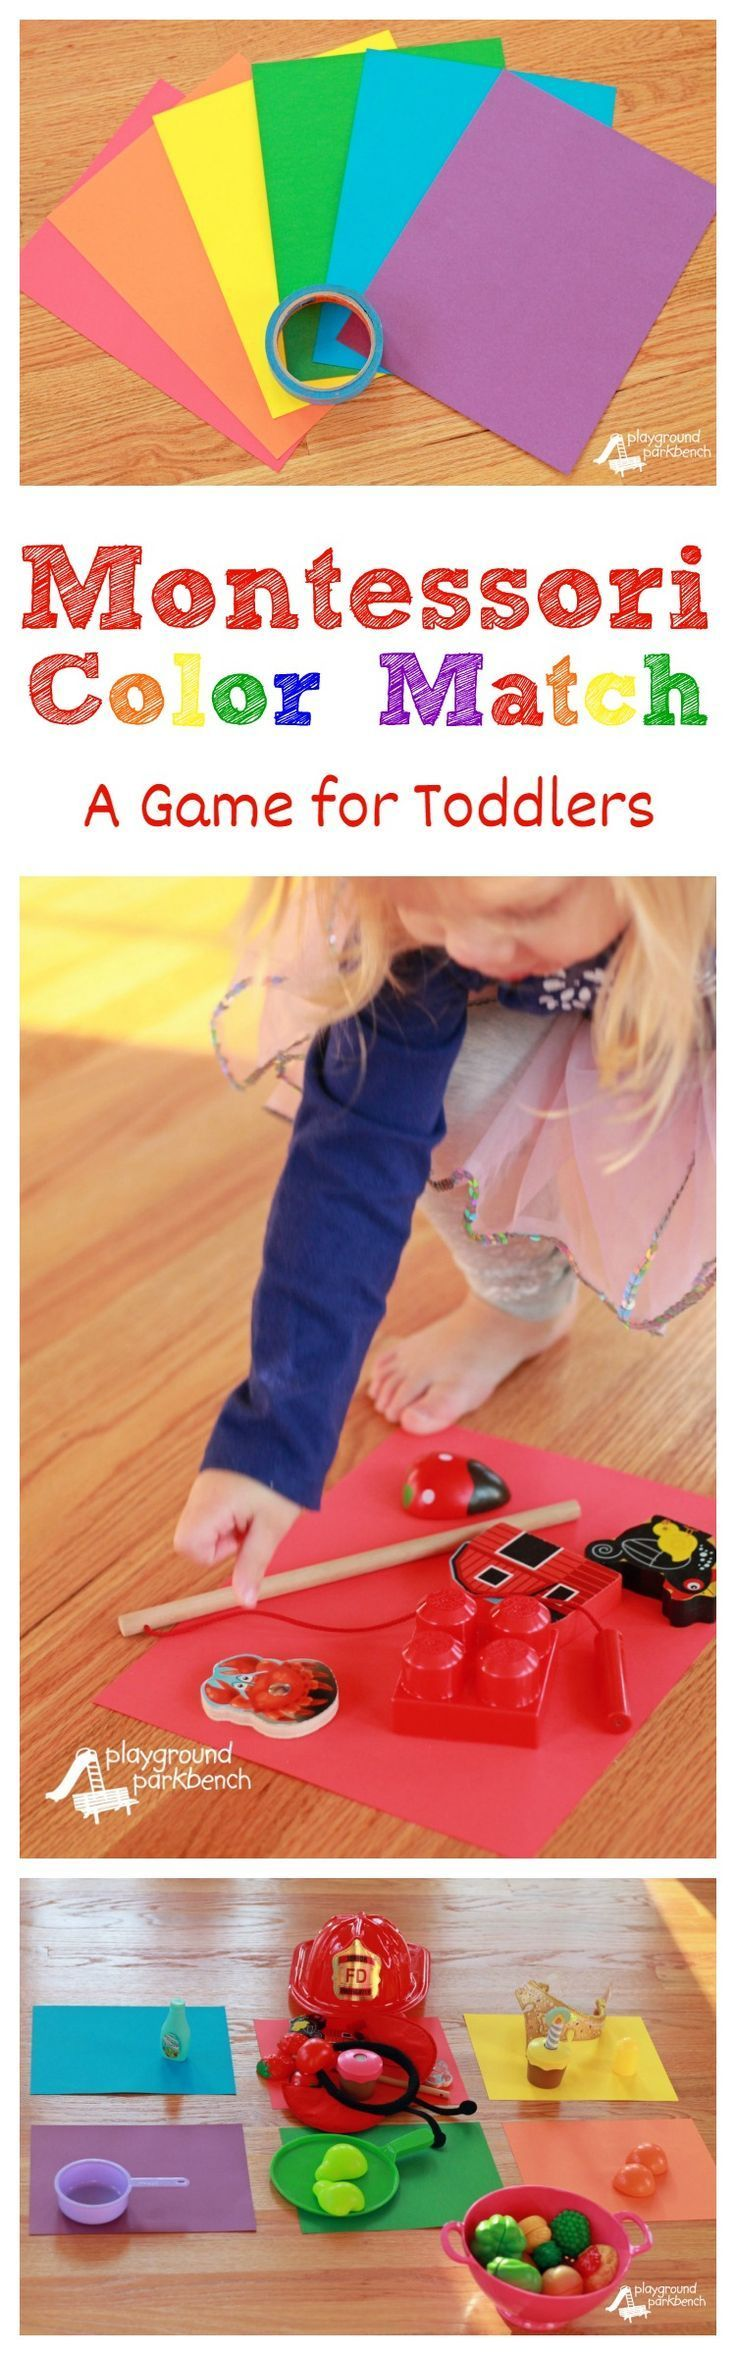 Color games for pre k - Colors Games For Pre K Montessori Color Match An Easy Game For Toddlers Teach Your